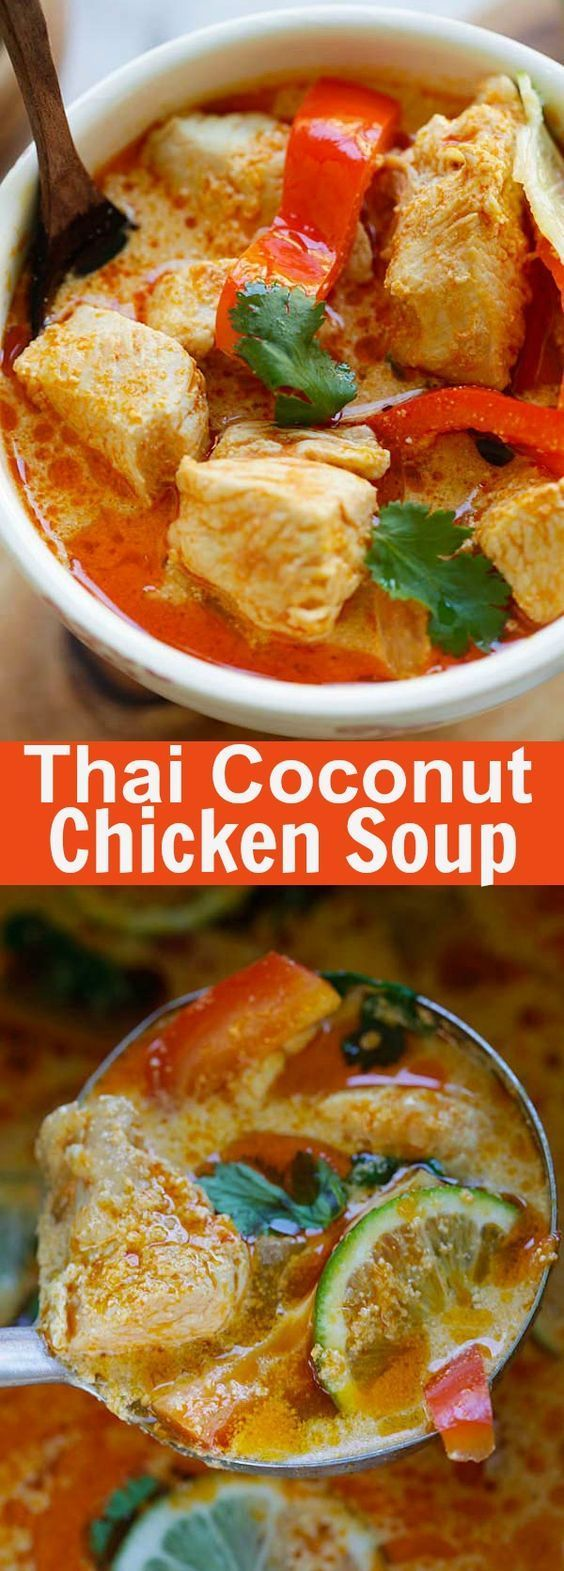 Thai Coconut Chicken Soup - easiest and fastest Thai coconut chicken recipe ever! Takes only 15 mins and dinner is ready  